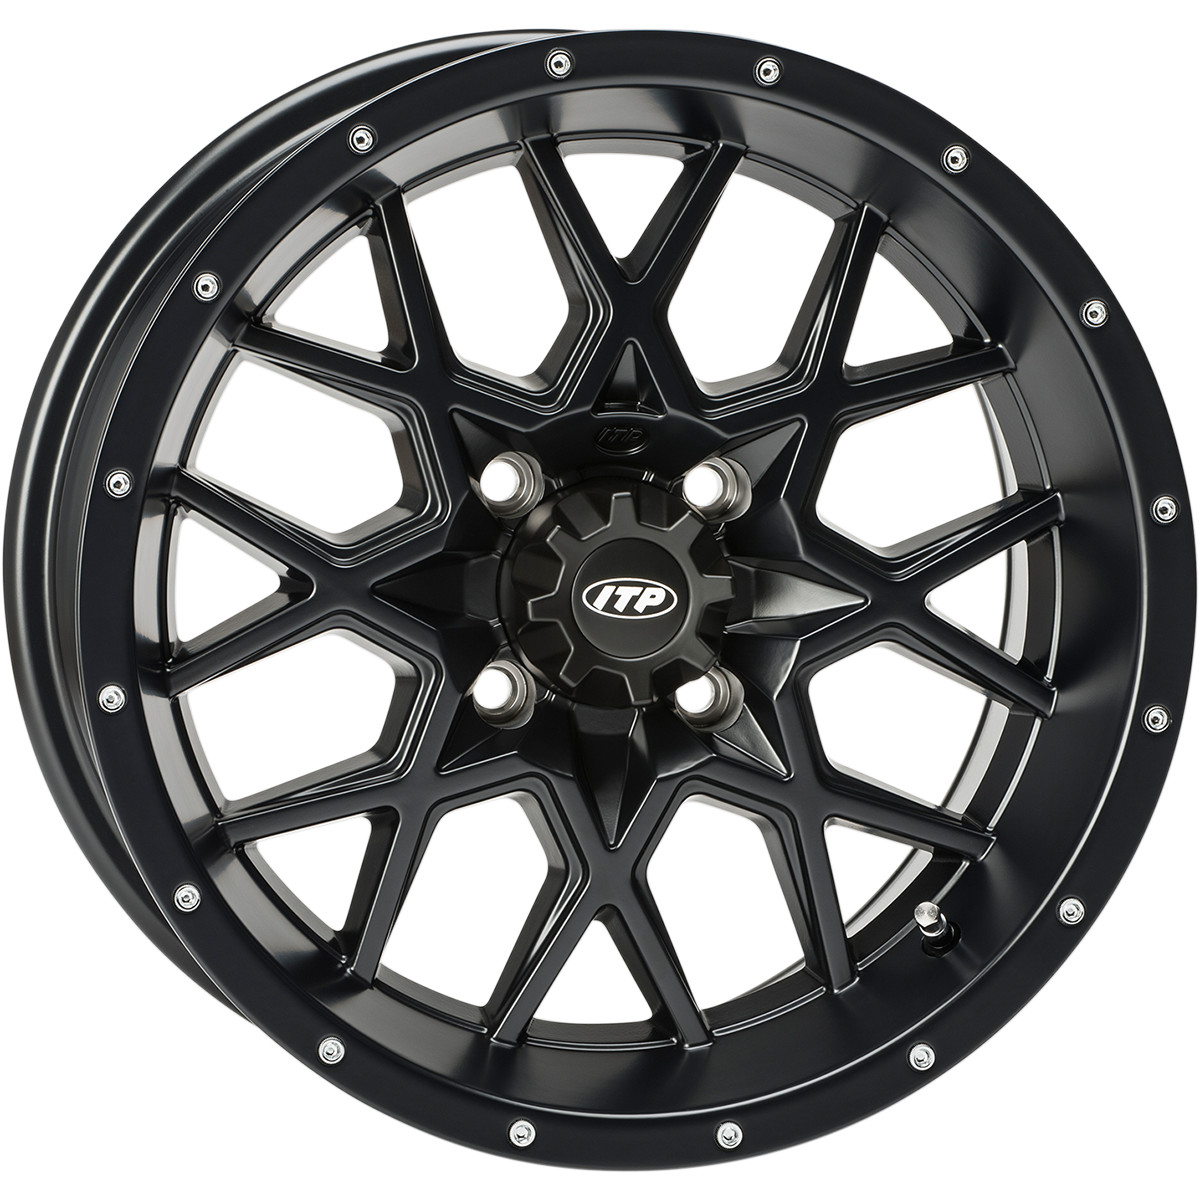 ITP 12x7 4x137 Hurricane Black vannesarja Can-Am